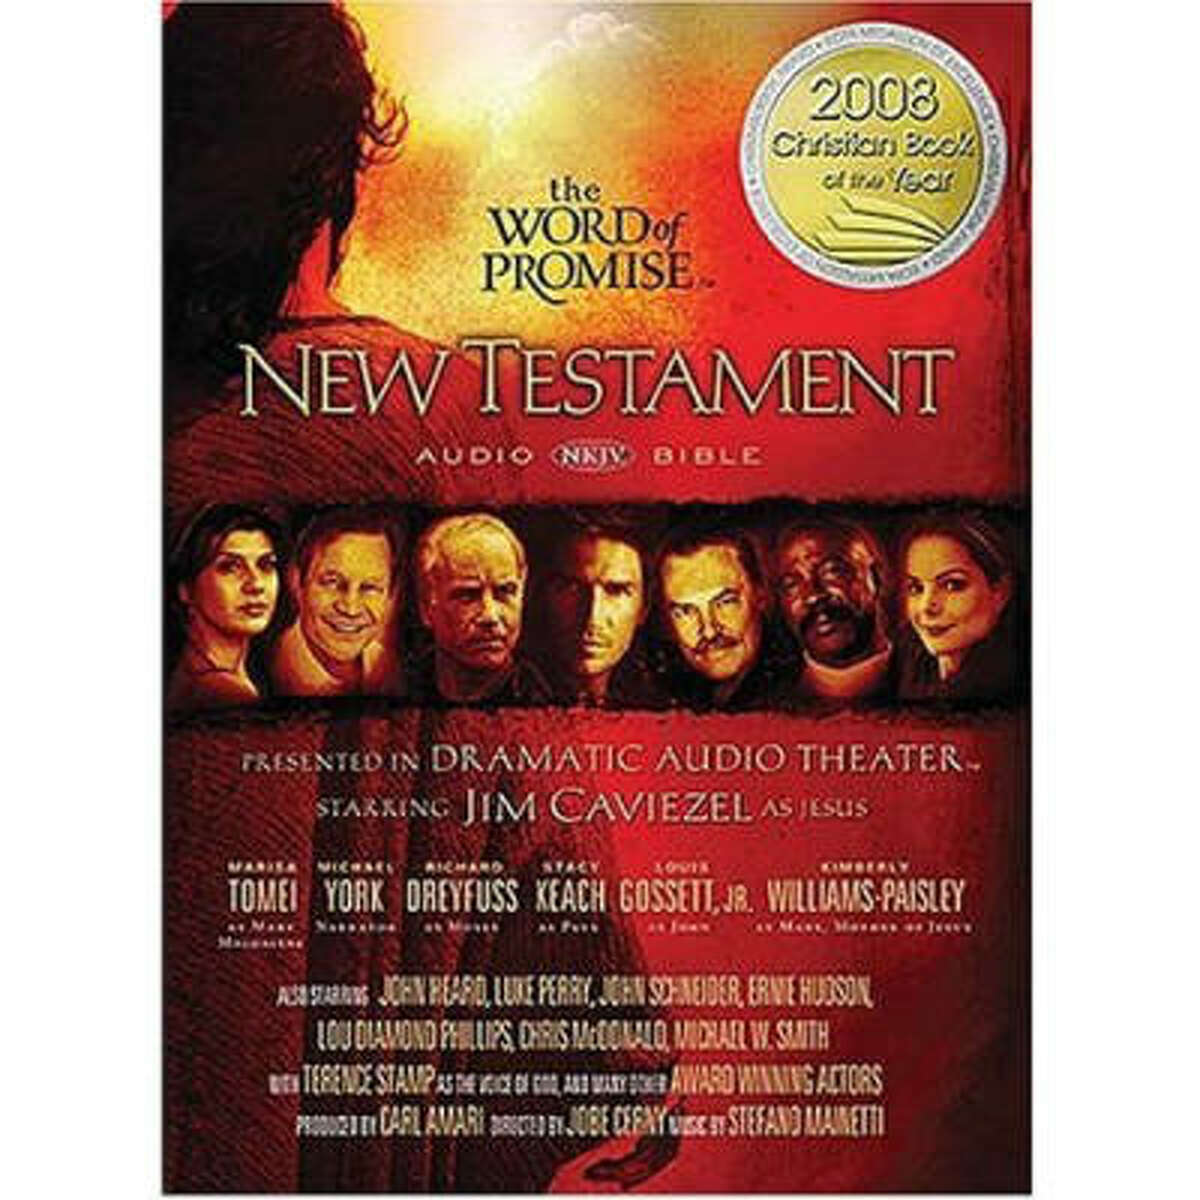 title: The Word of Promise: New Testament Audio Bible author: Thomas Nelson